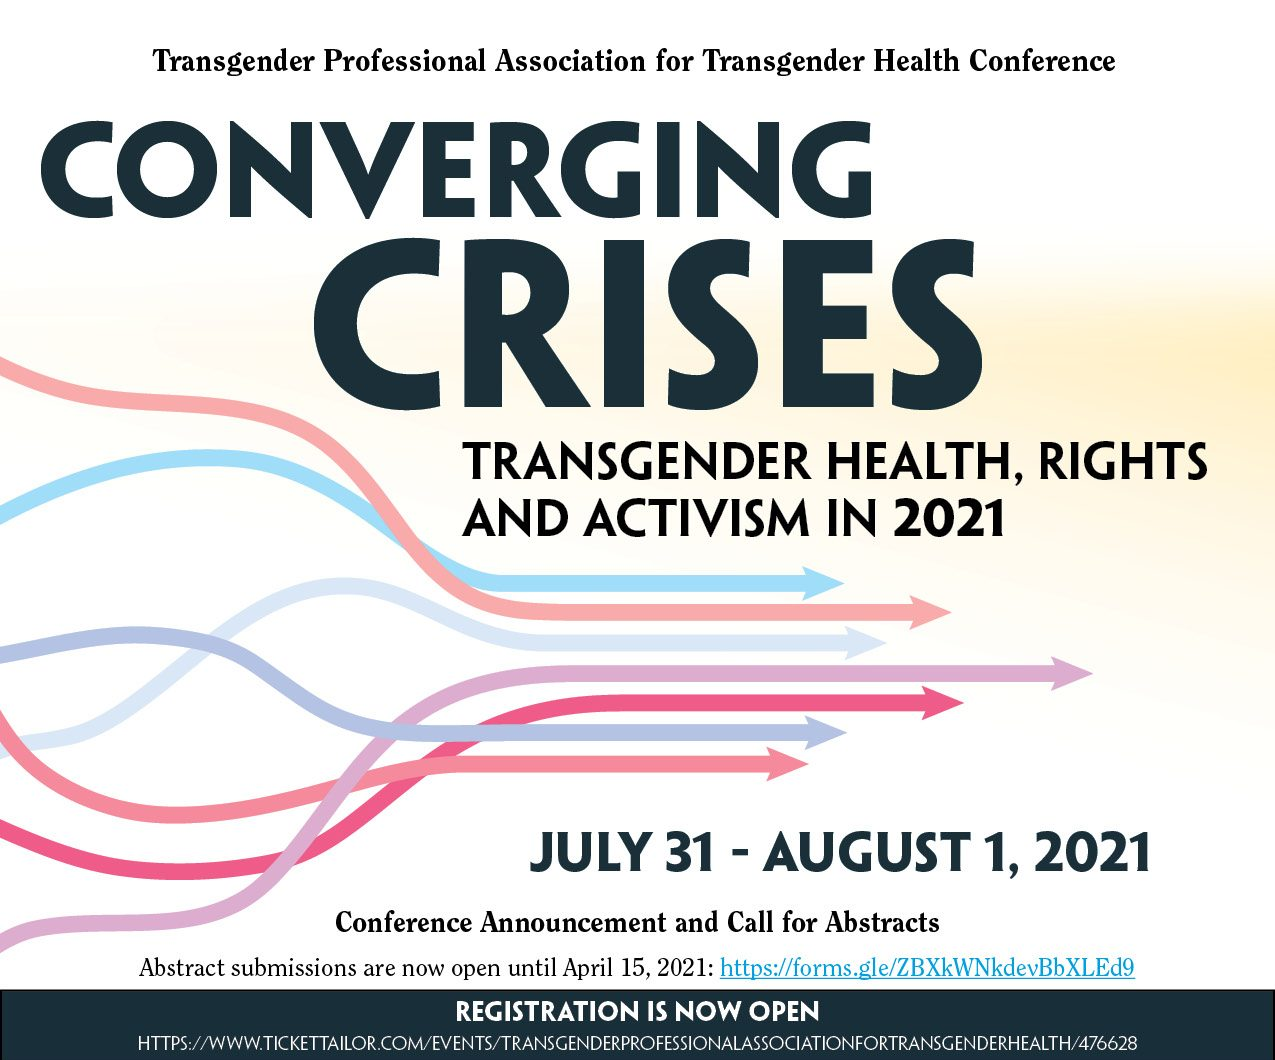 Poster for the inaugural TPATH conference, with Converging Crises in large navy text alongside the subtitle in smaller font. Many arrows in the colours of the trans flag run from left to right, starting spread out and streamlining so that they are closer together. Plenty of text detailing the event, registration details, and abstract submission details are included -- refer to the event text and attached PDF for further details.